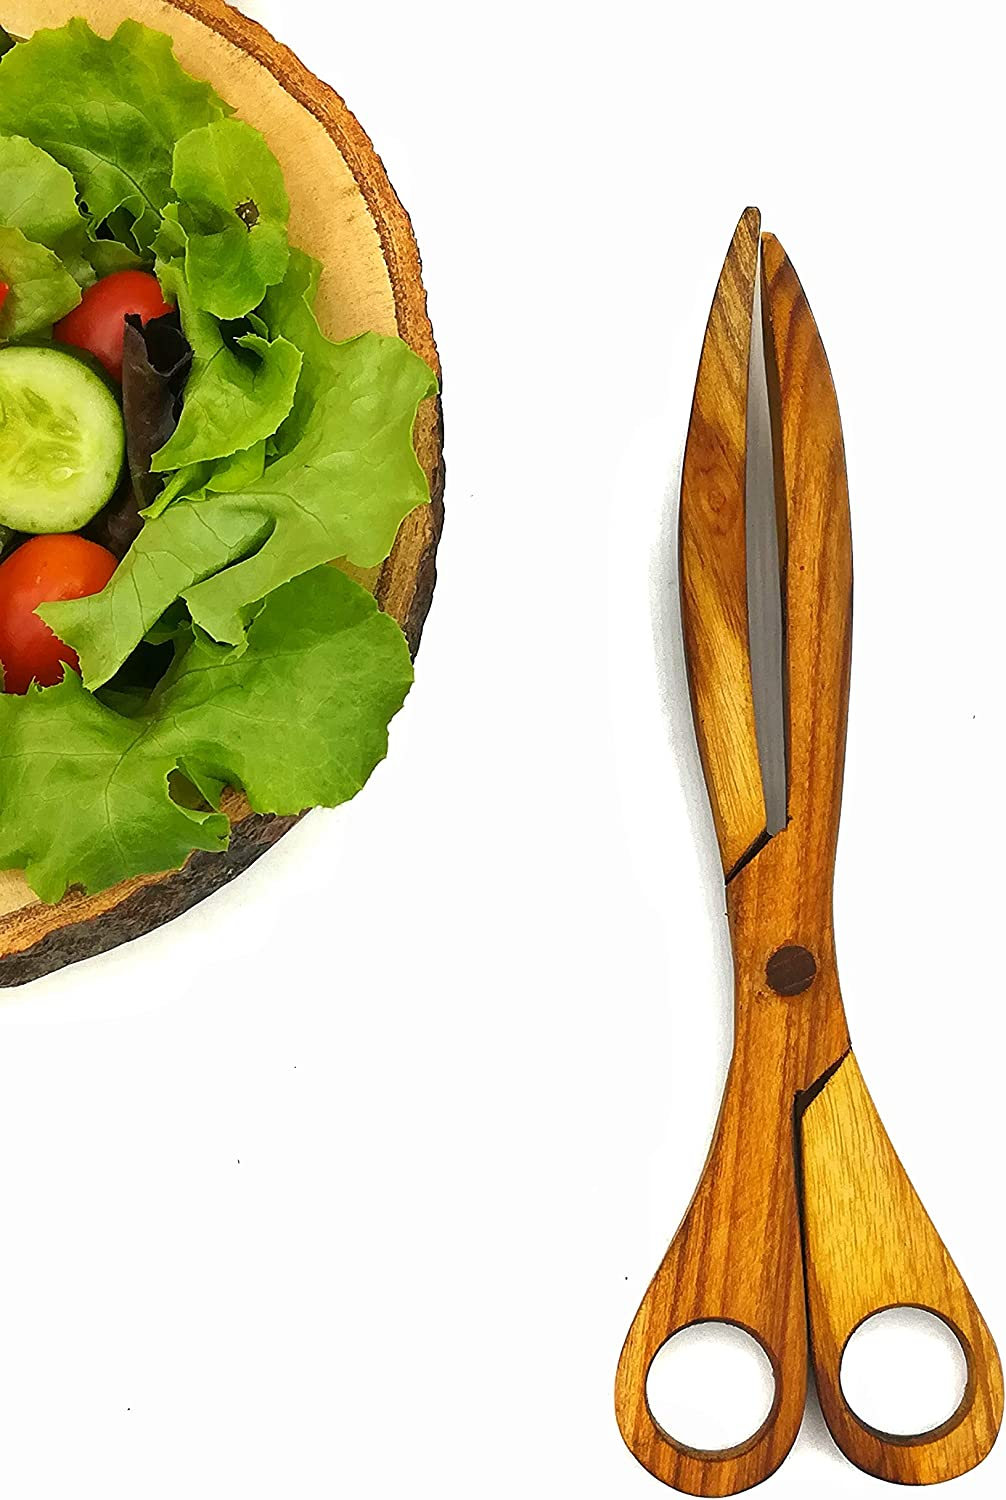 Wooden Utensils Kitchen Tools Wooden Kitchen Serving Food Tongs Spoon and Fork Teak Wood Salad Scissor Tongs - Servils by Kind Bear